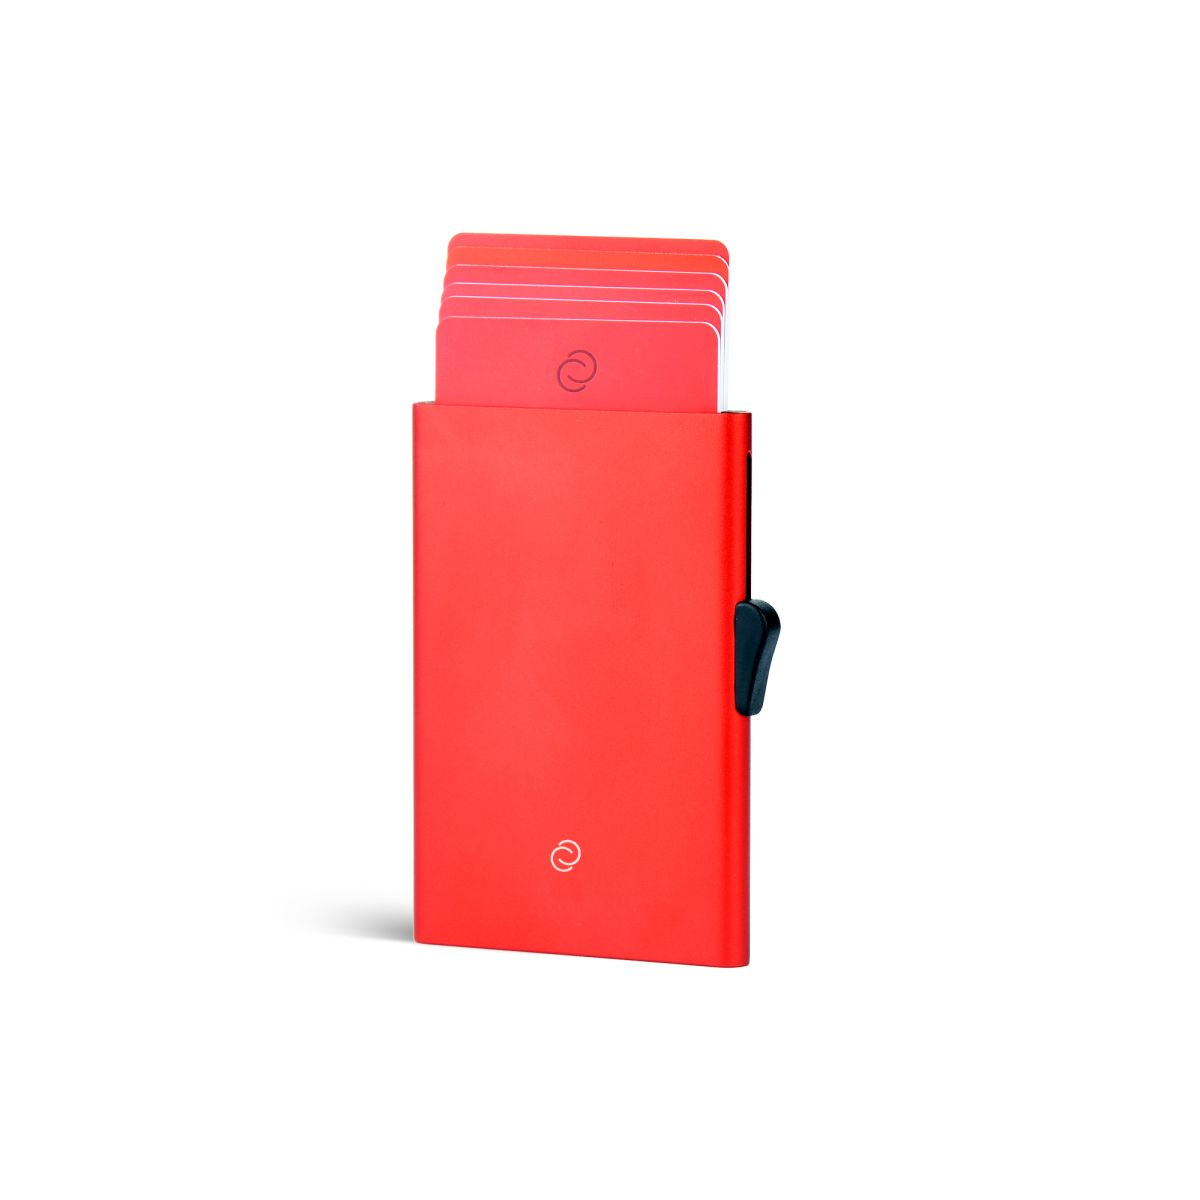 C-Secure Slim Aluminum Card Holder - Red